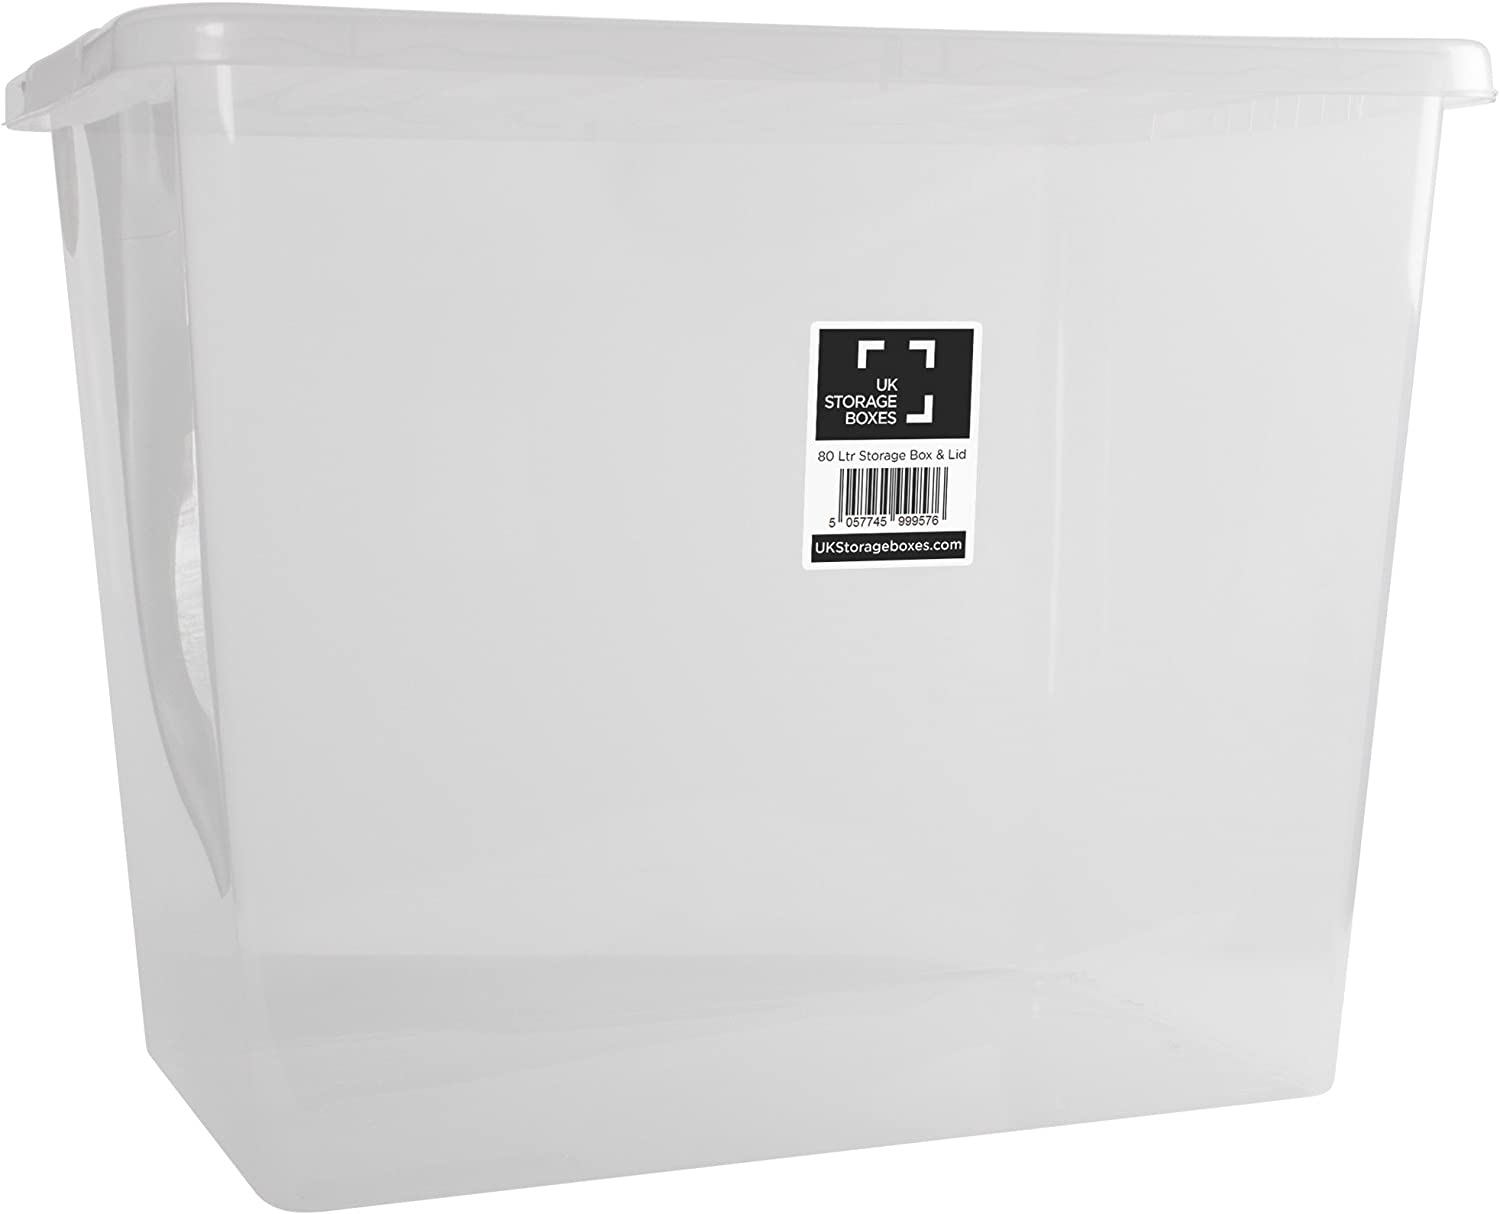 Clear Plastic Storage Box with Lid 80 L - Pack of 10 Transparent